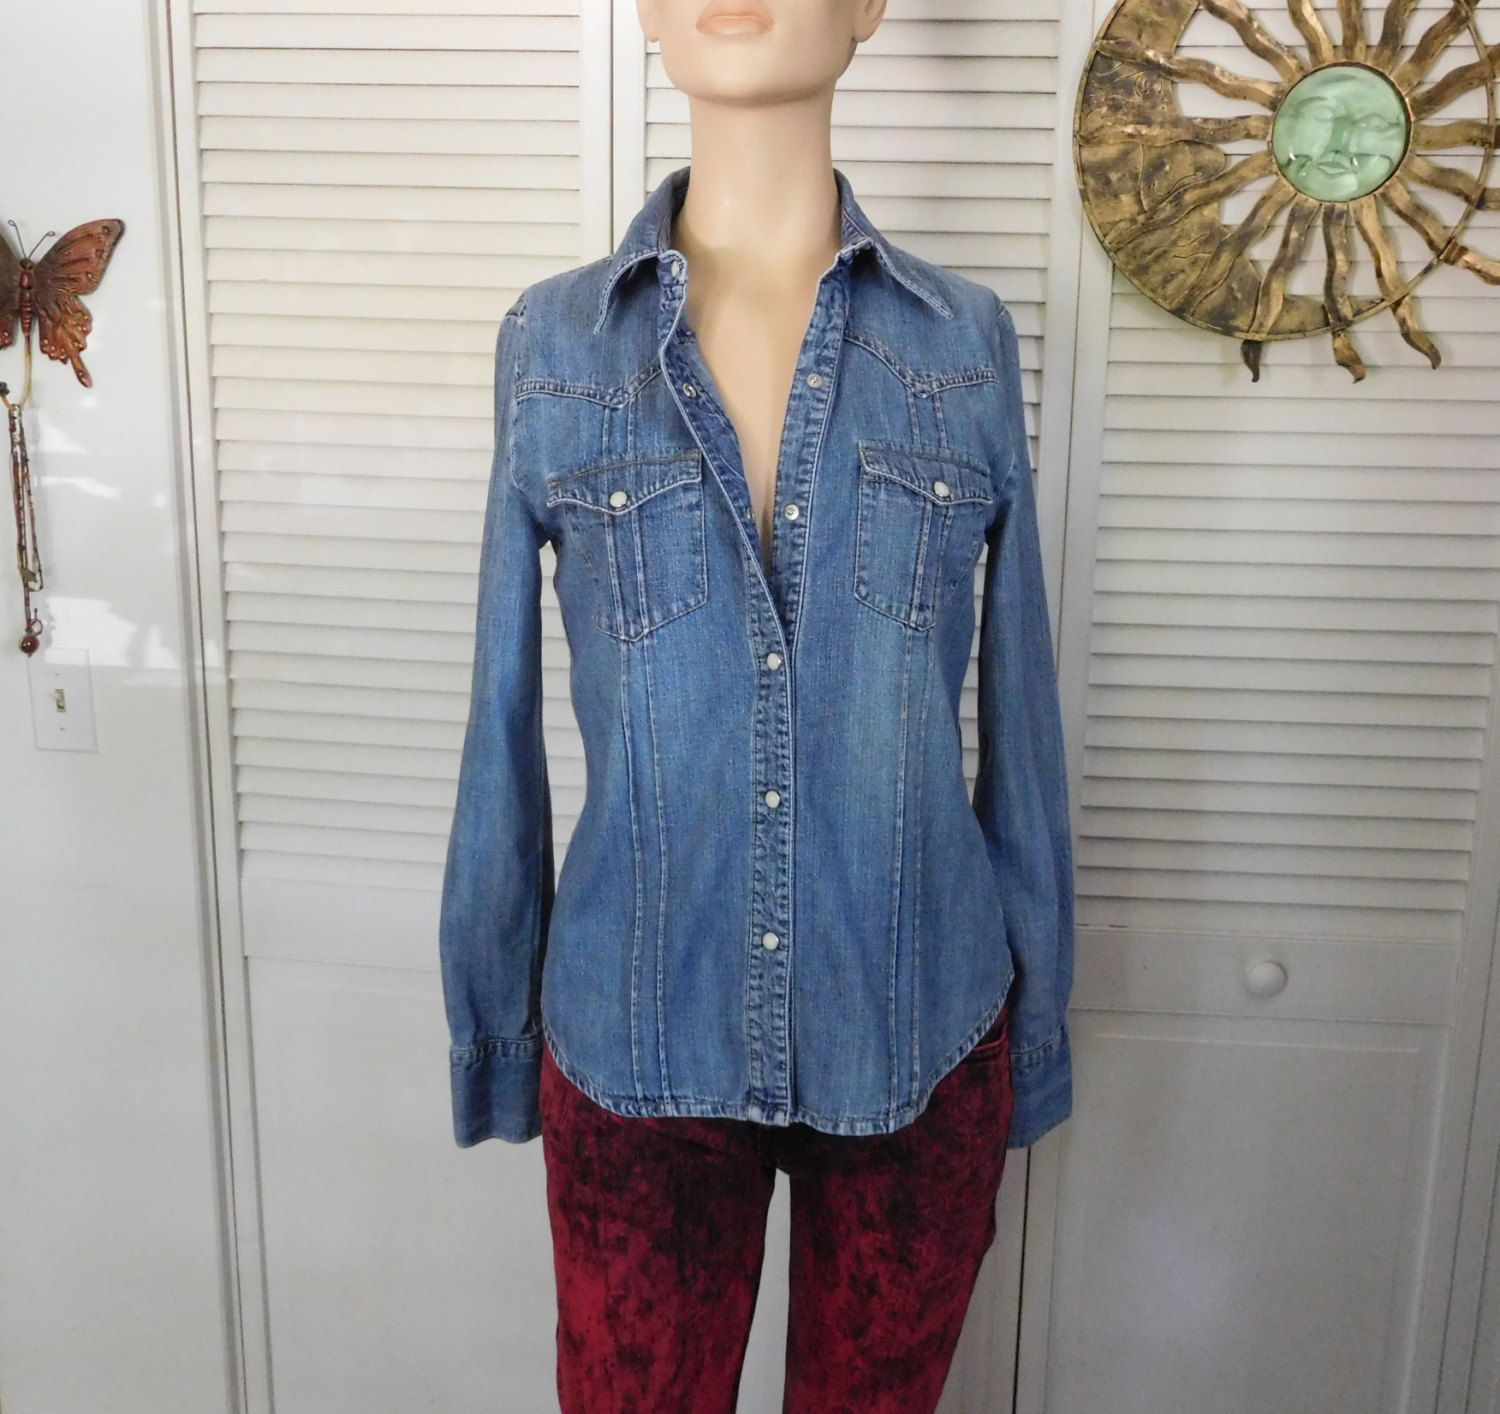 6b9cad50e6 Cowgirl Jean Shirt Fitted Size Small Blue Jean Shirt Pearl Snap Buttons  Hippie Boho Clothes Gypsy